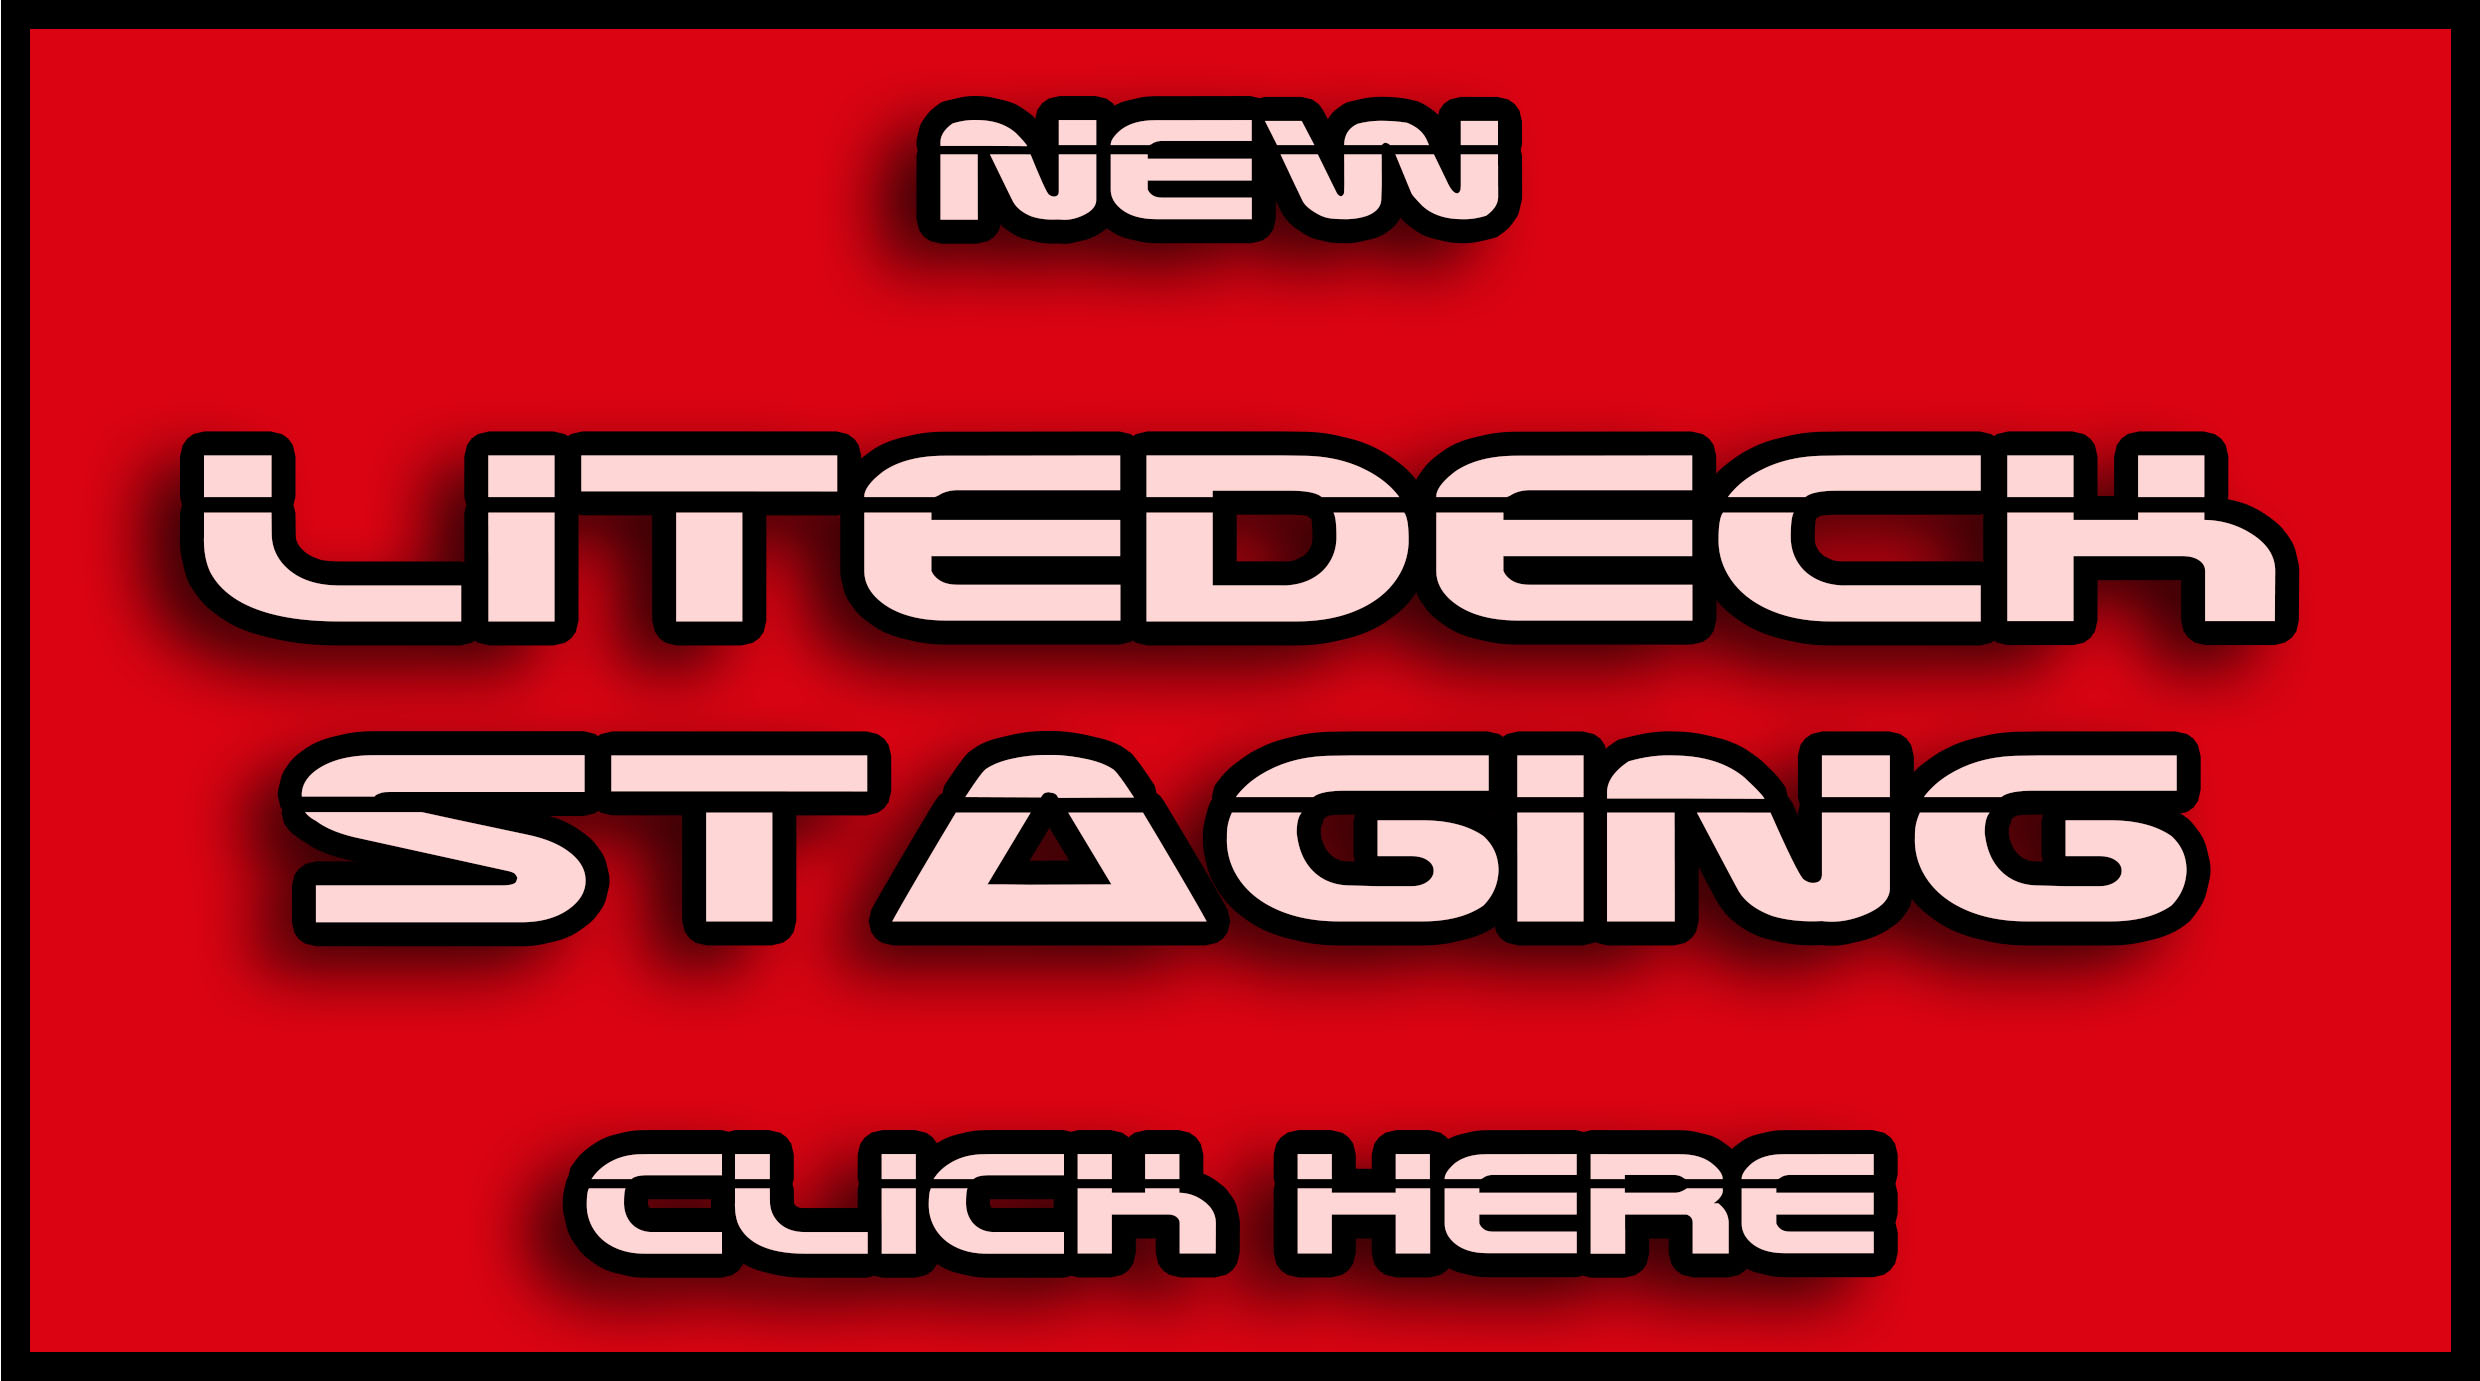 litedeck staging